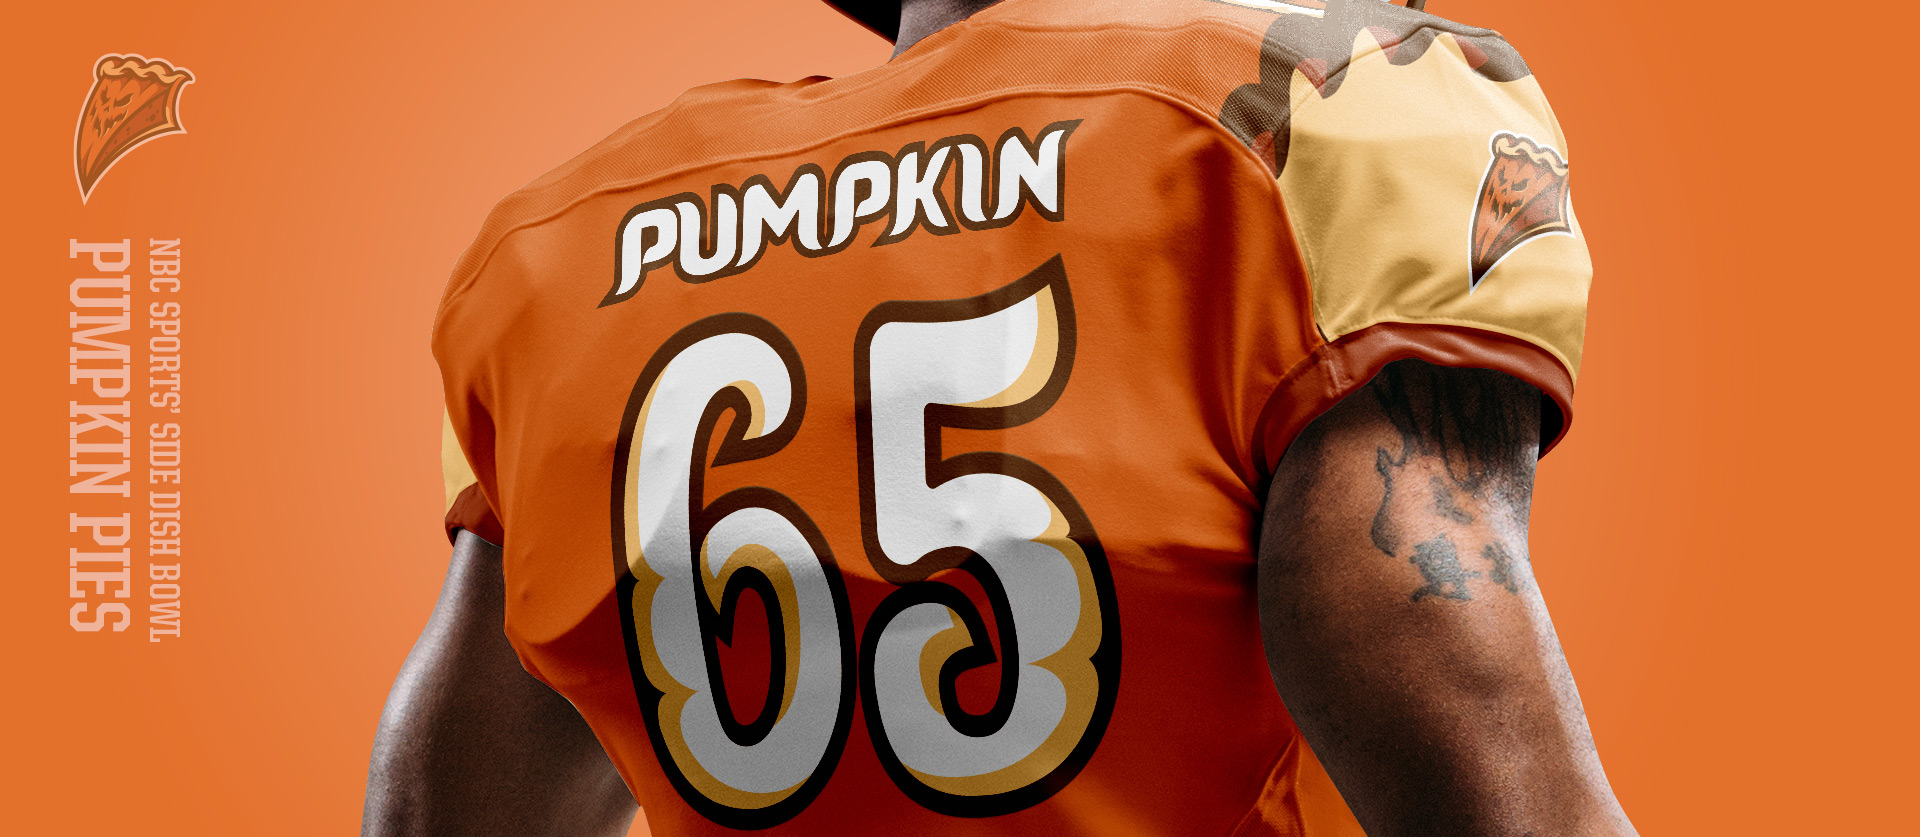 Pumpkin Pies Back - Football Uniform Design for NBC Sports Thanksgiving Side Dish Bowl